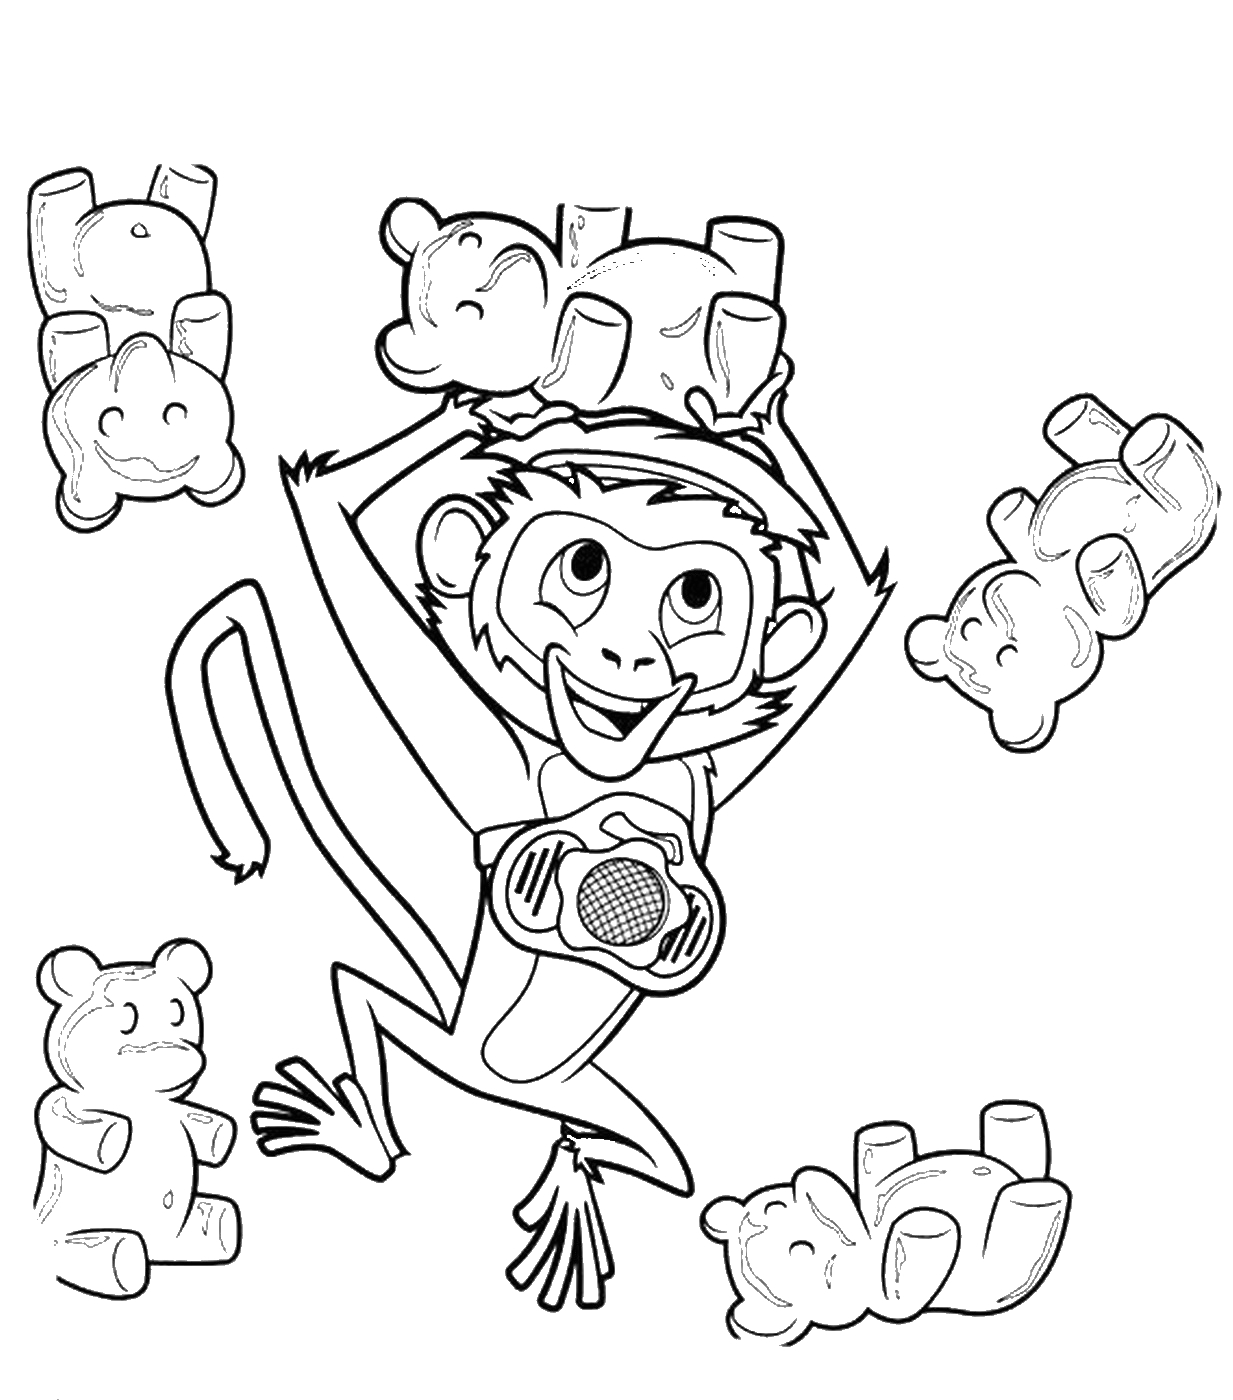 Coloring Pages for Cloudy with A Chance Of Meatballs Cloudy with A Chance Of Meatballs Coloring Pages